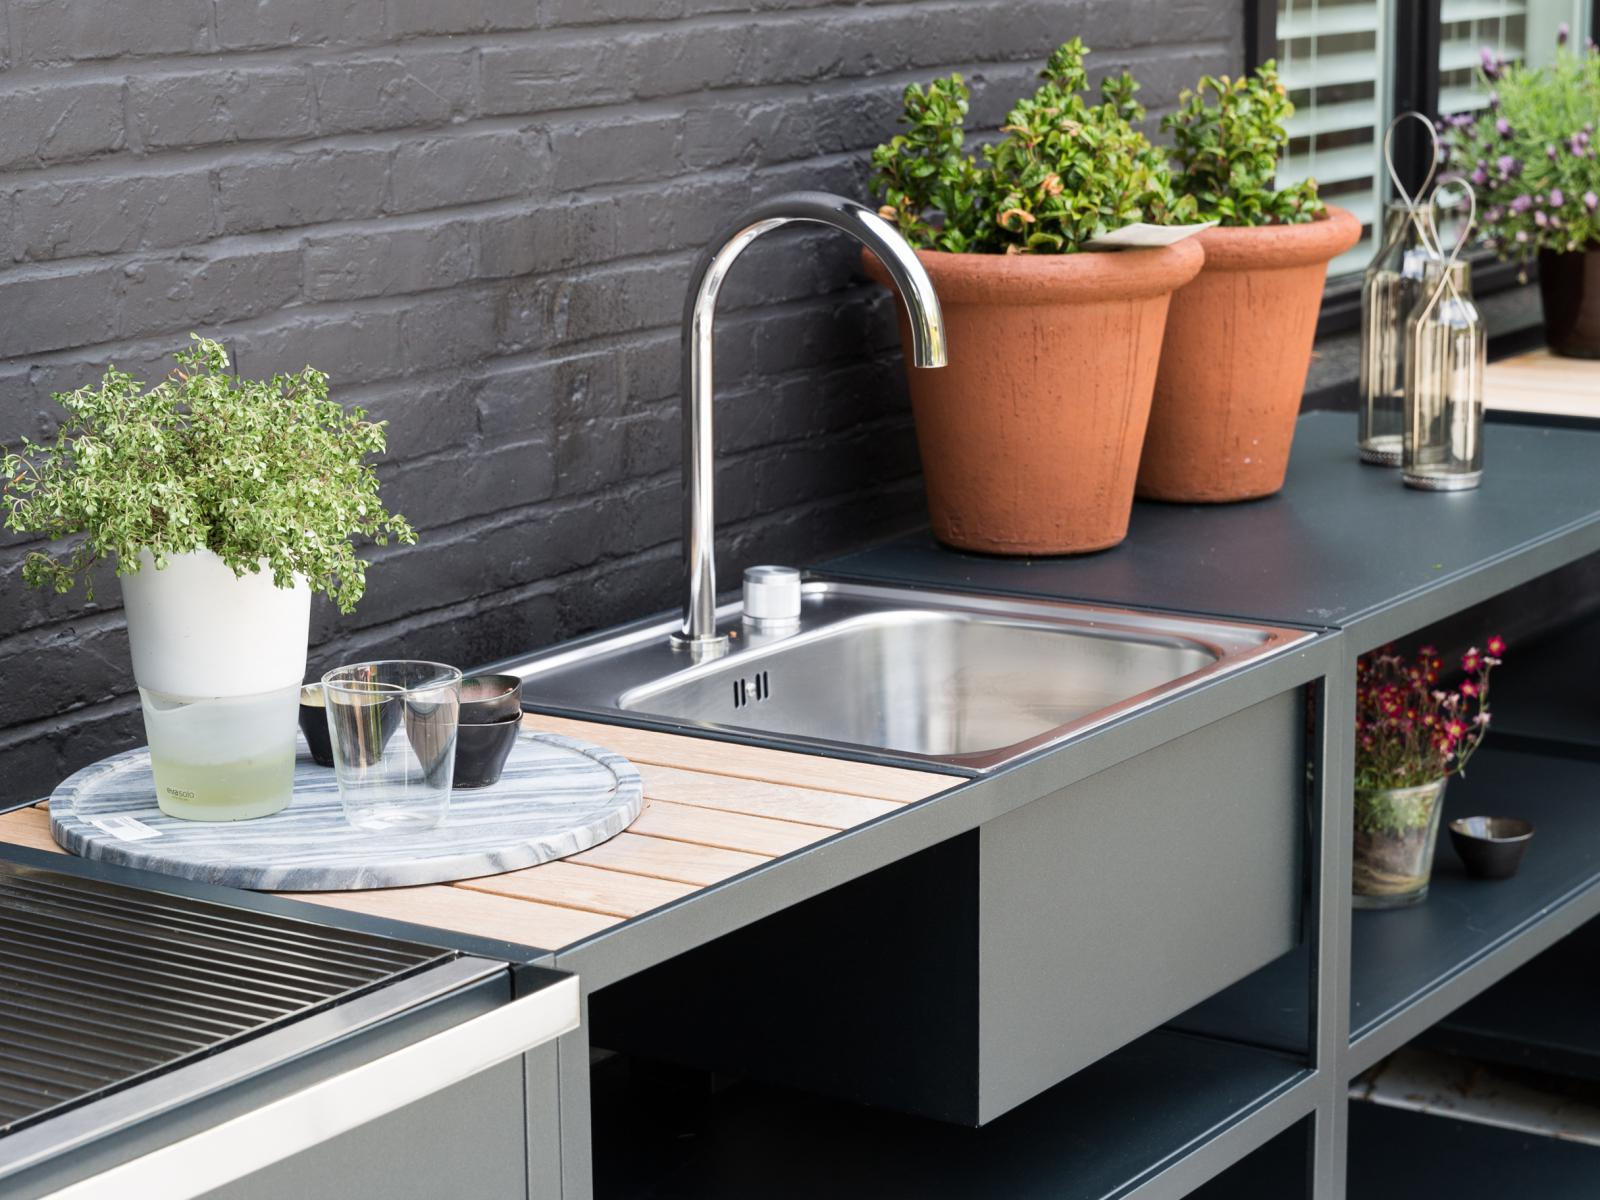 Feelathome stockverkoop roshults garden kitchen sink for Stockverkoop keukens